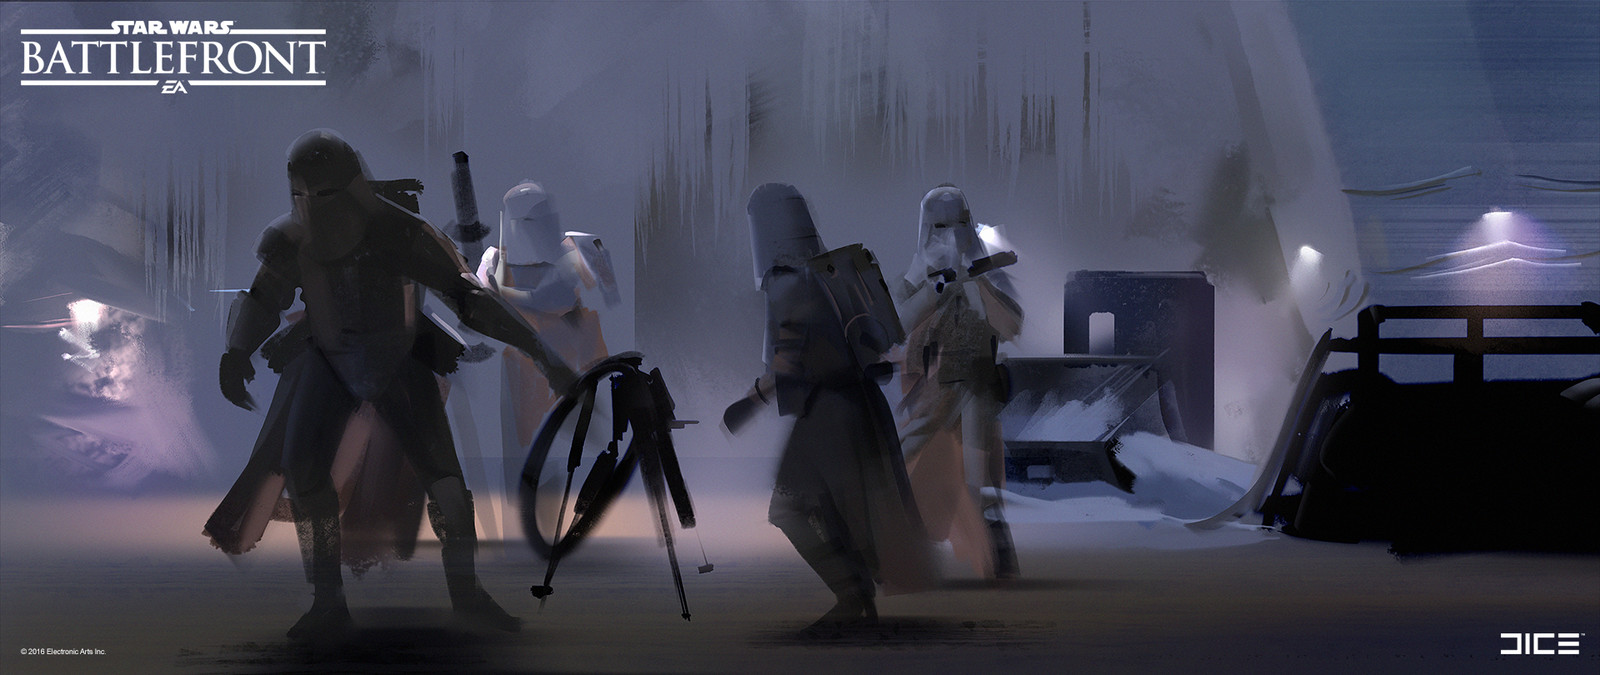 Style study from movie still for the 2015 Star Wars Battlefront game. (2014)